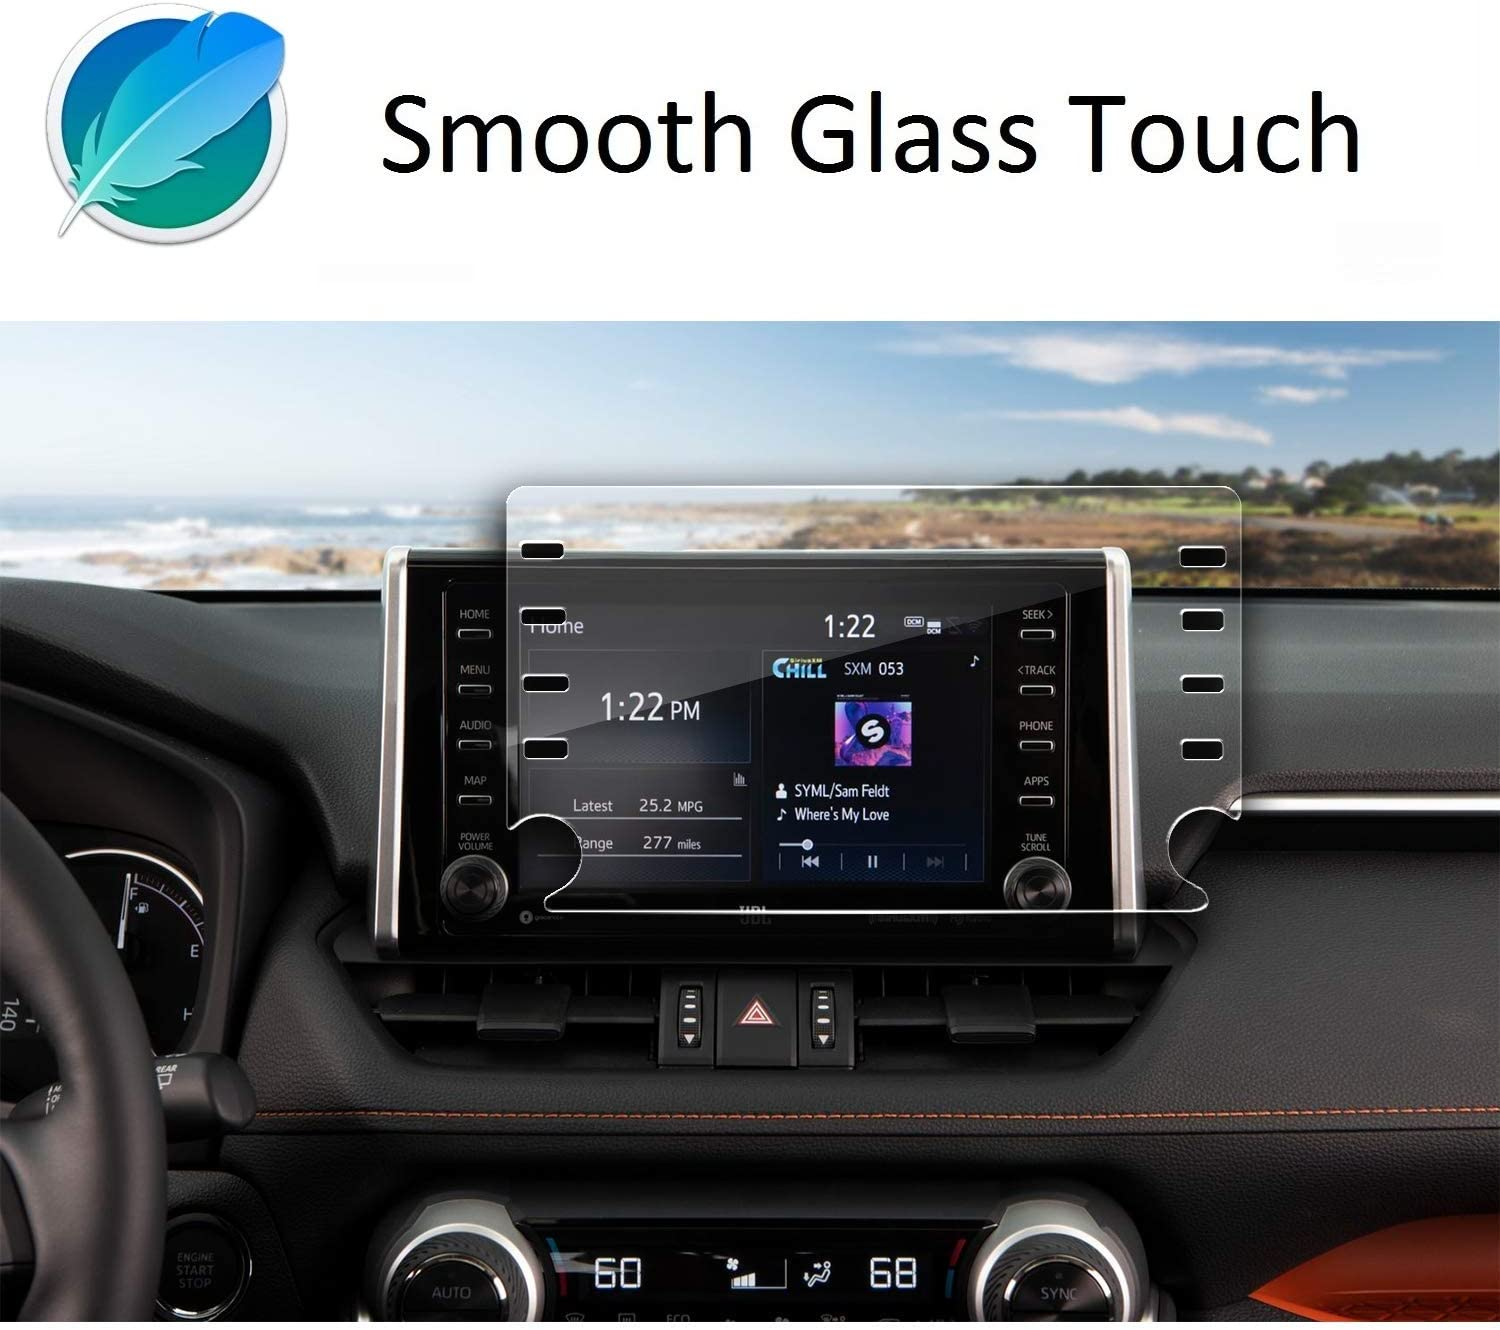 Navigation Protection Accessories Premium Tempered Glass ZFM Screen Protector Compatible with 2020 Toyota Corolla 8 Inch Touch Screen,Anti Glare Scratch,Shock-Resistant